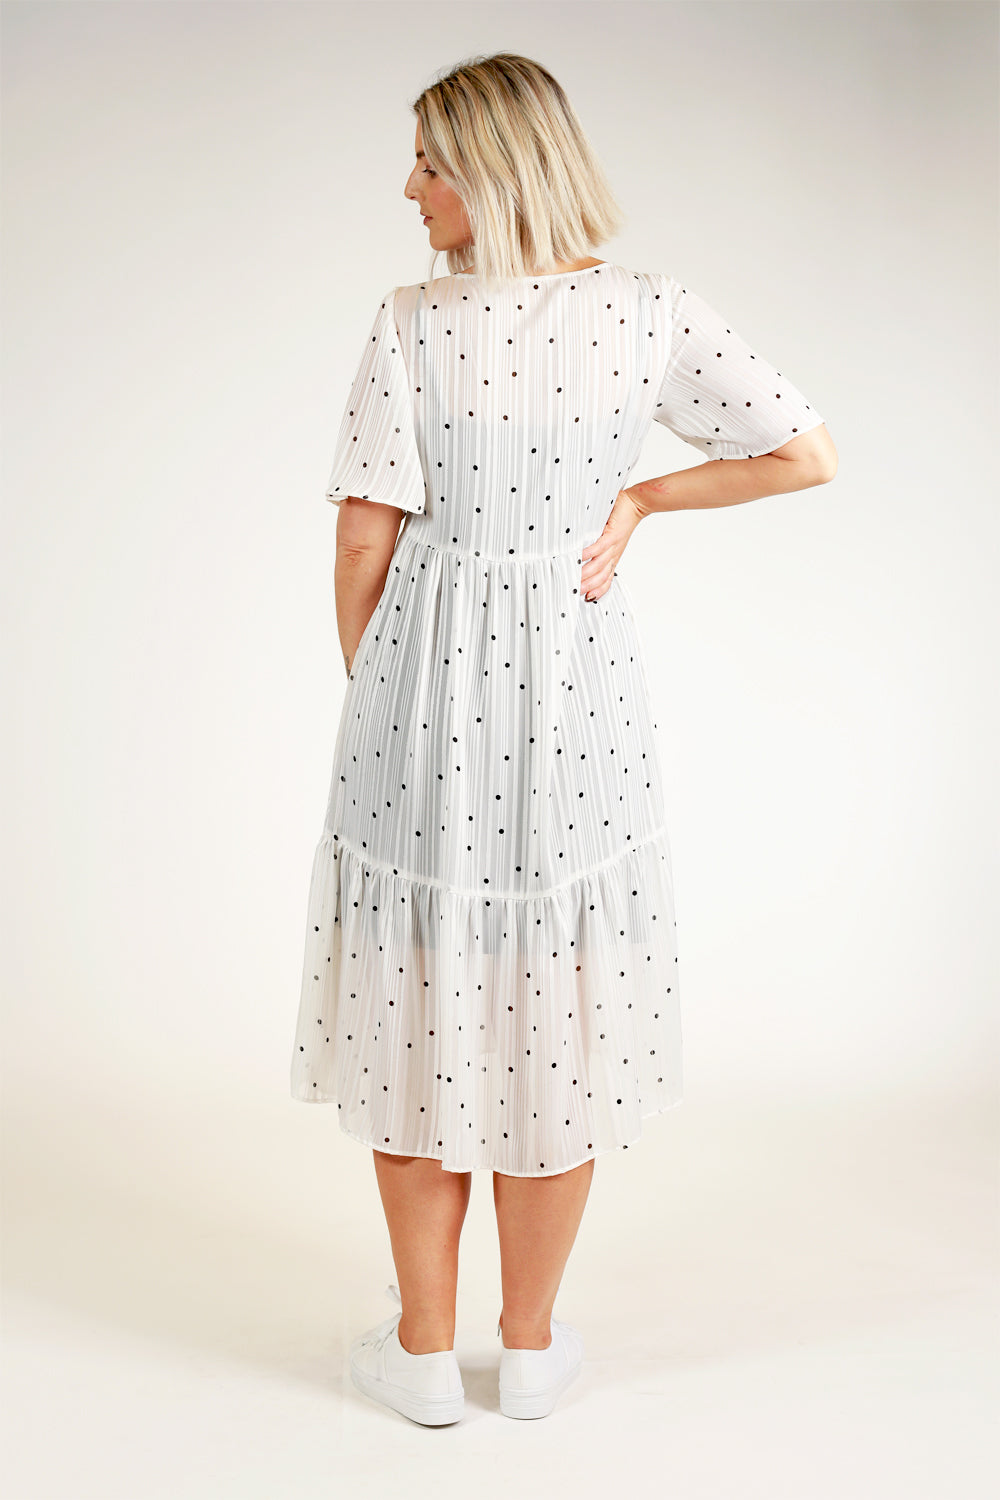 Jaffa Family Dress - White